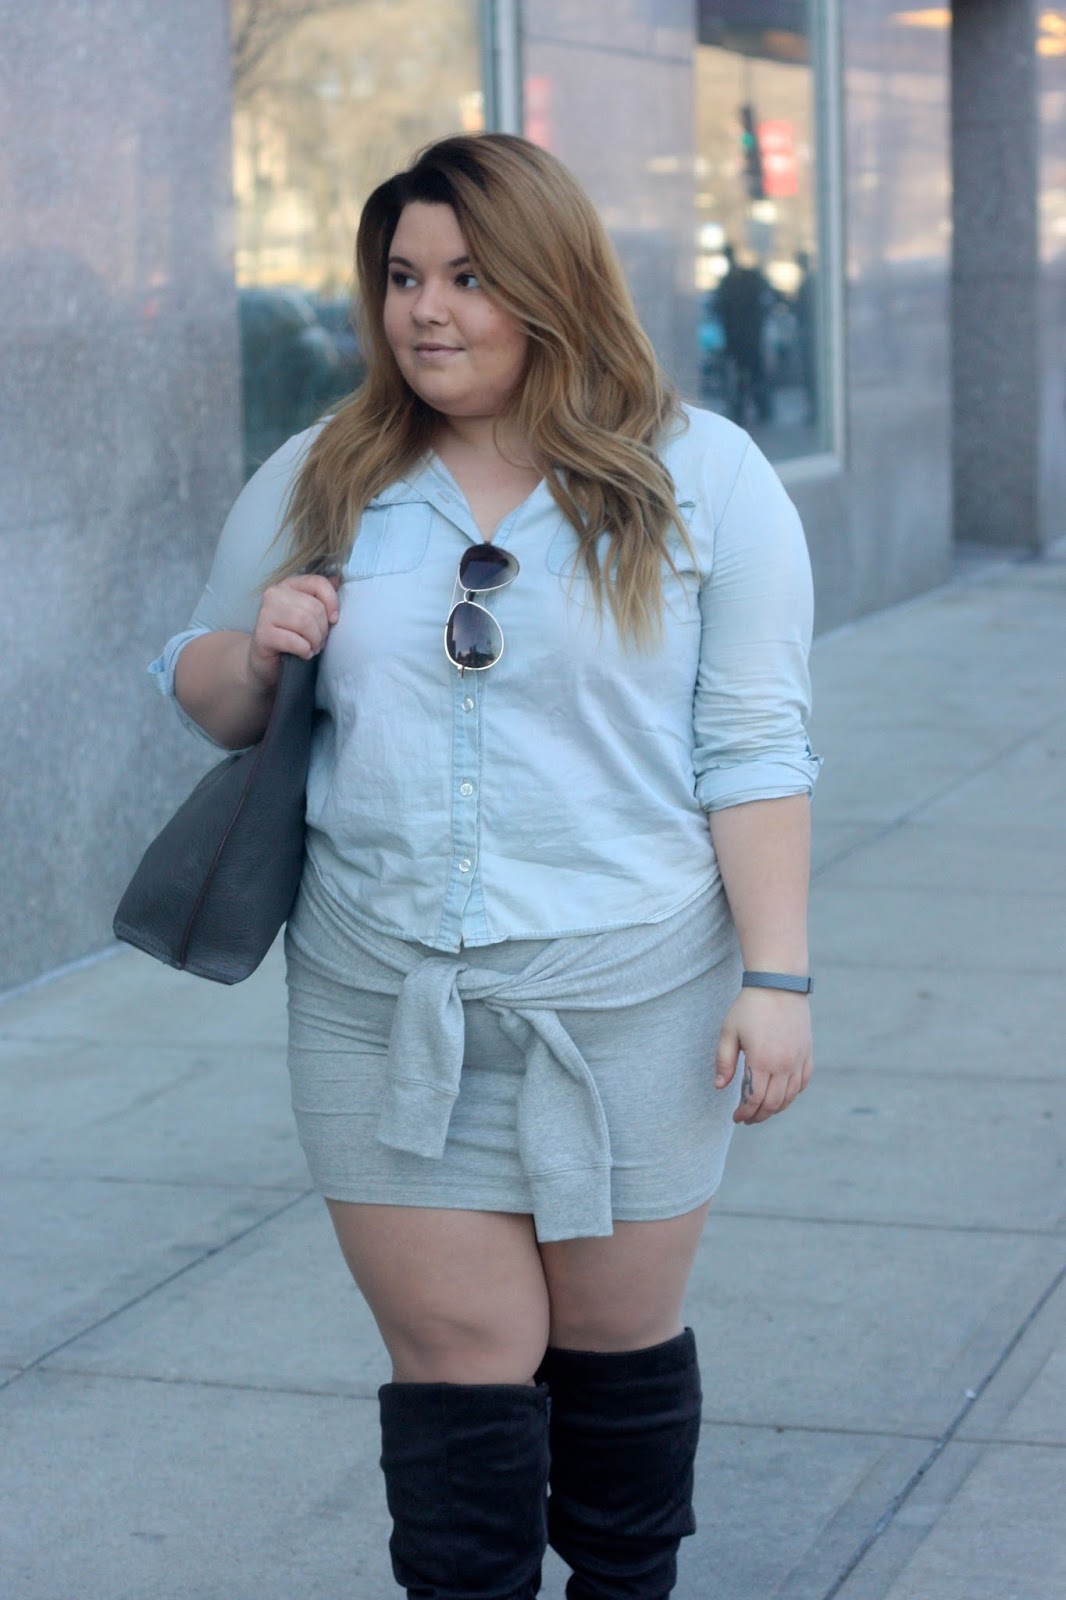 natalie in the city, natalie craig, chicago, ps fashion, plus size fashion blogger, how to wear a tie waist skirt, curvy, fatshion, charlotte russe plus, denim button up, knee high wide calf suede boots, bottle blonde